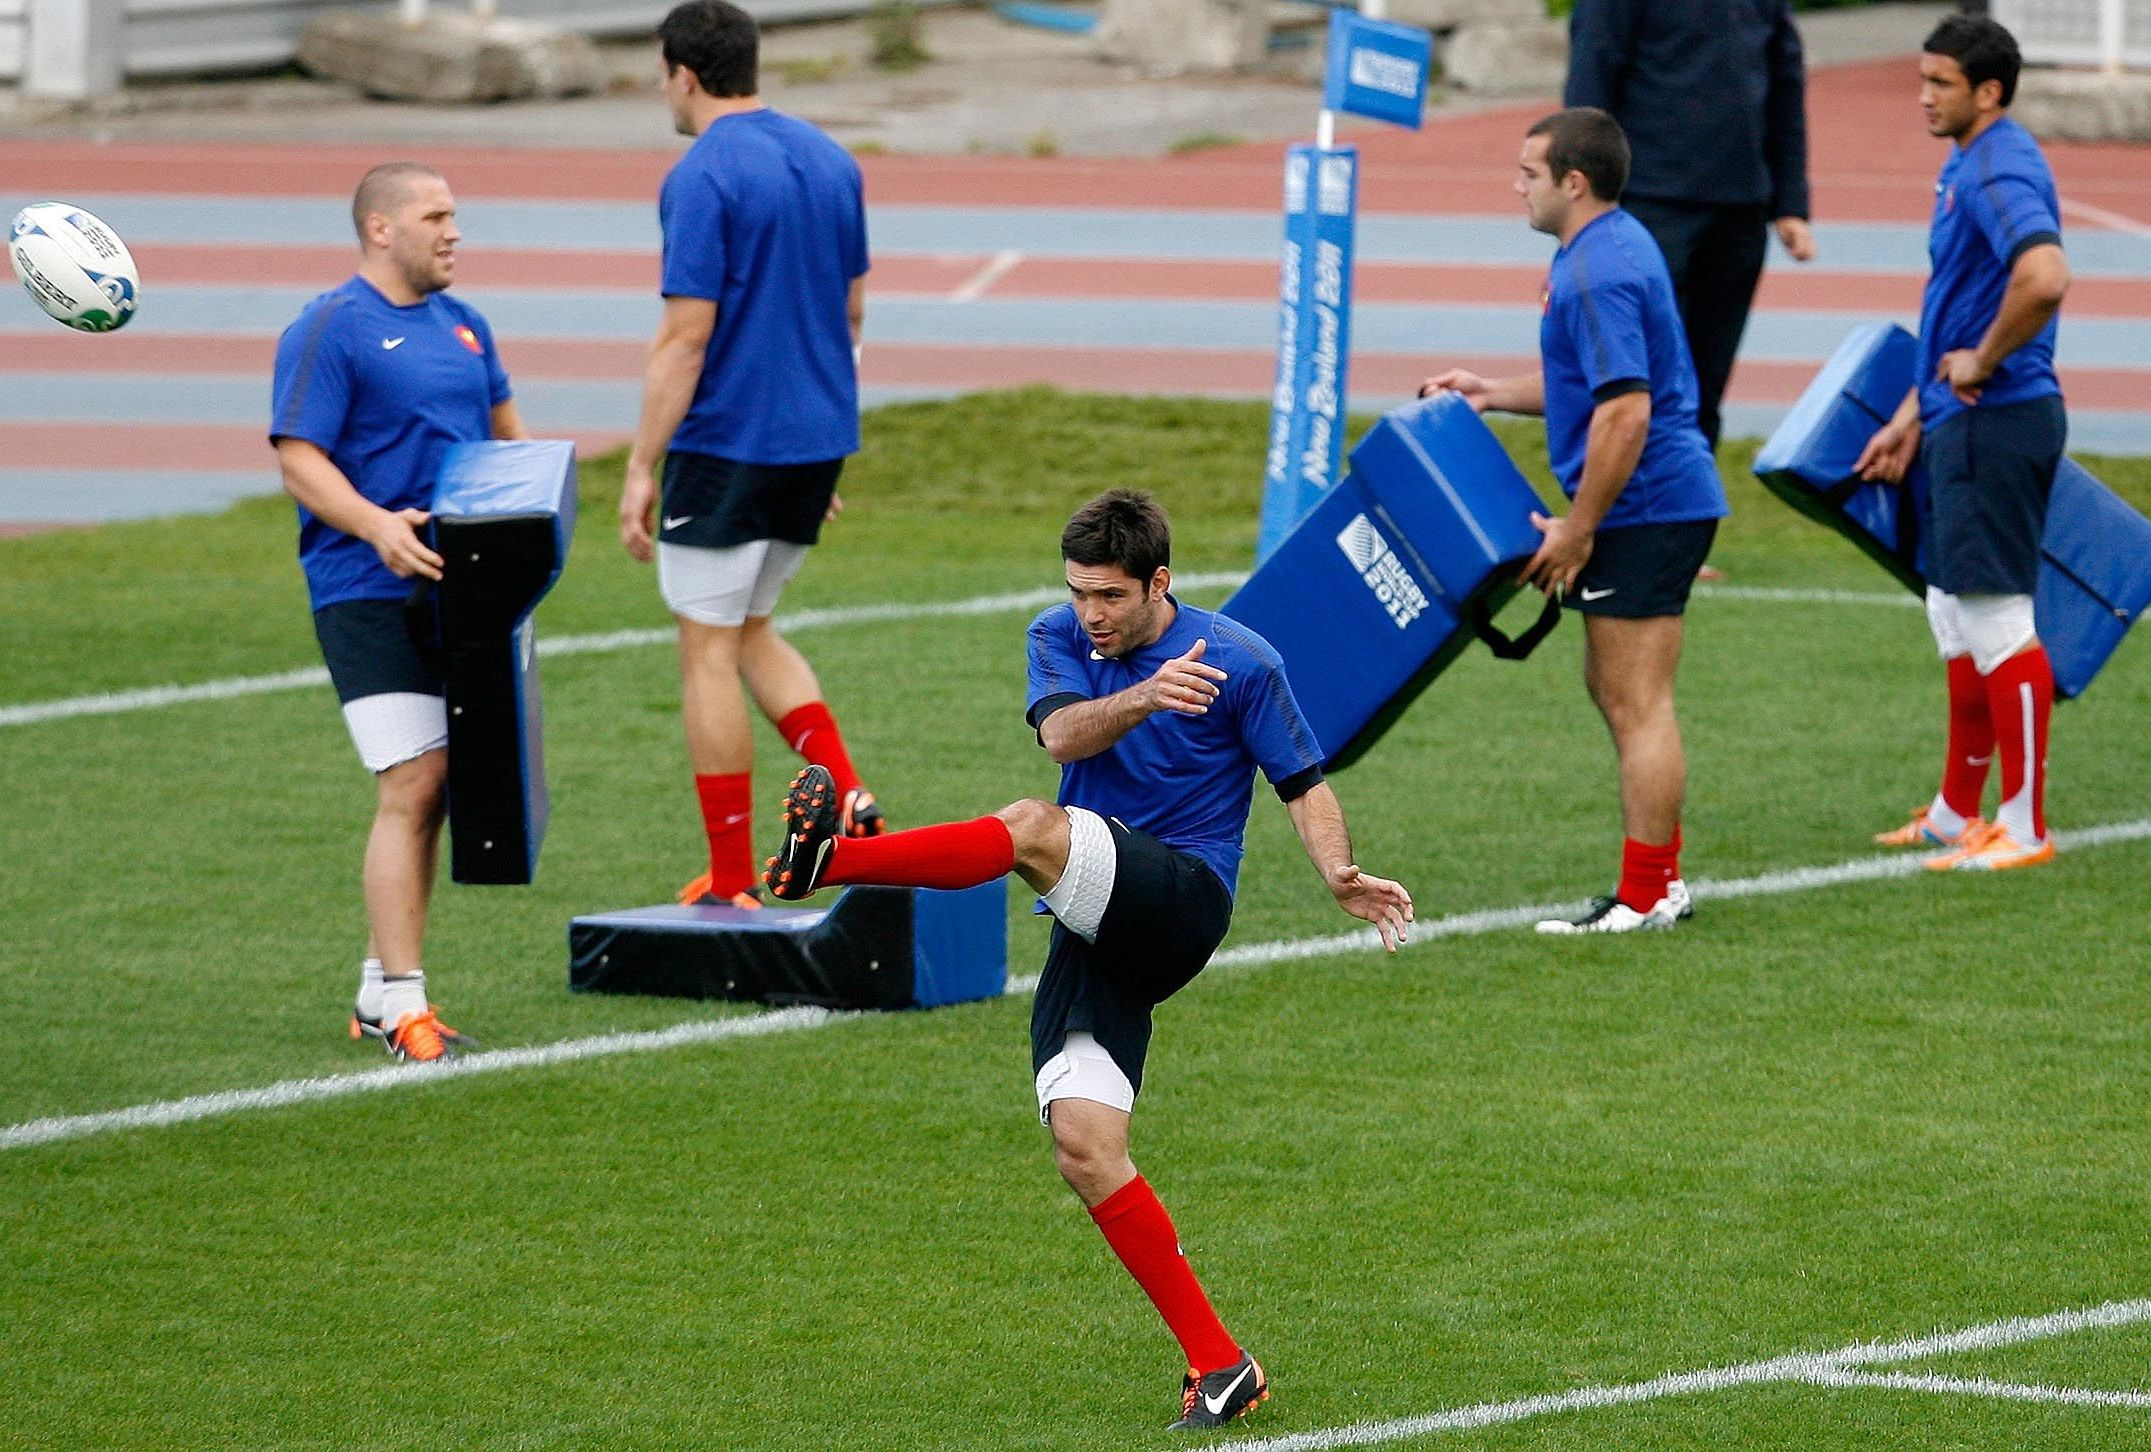 France angleterre j 3 coupe du monde 2011 rugby - Coupe du monde rugby 2009 ...